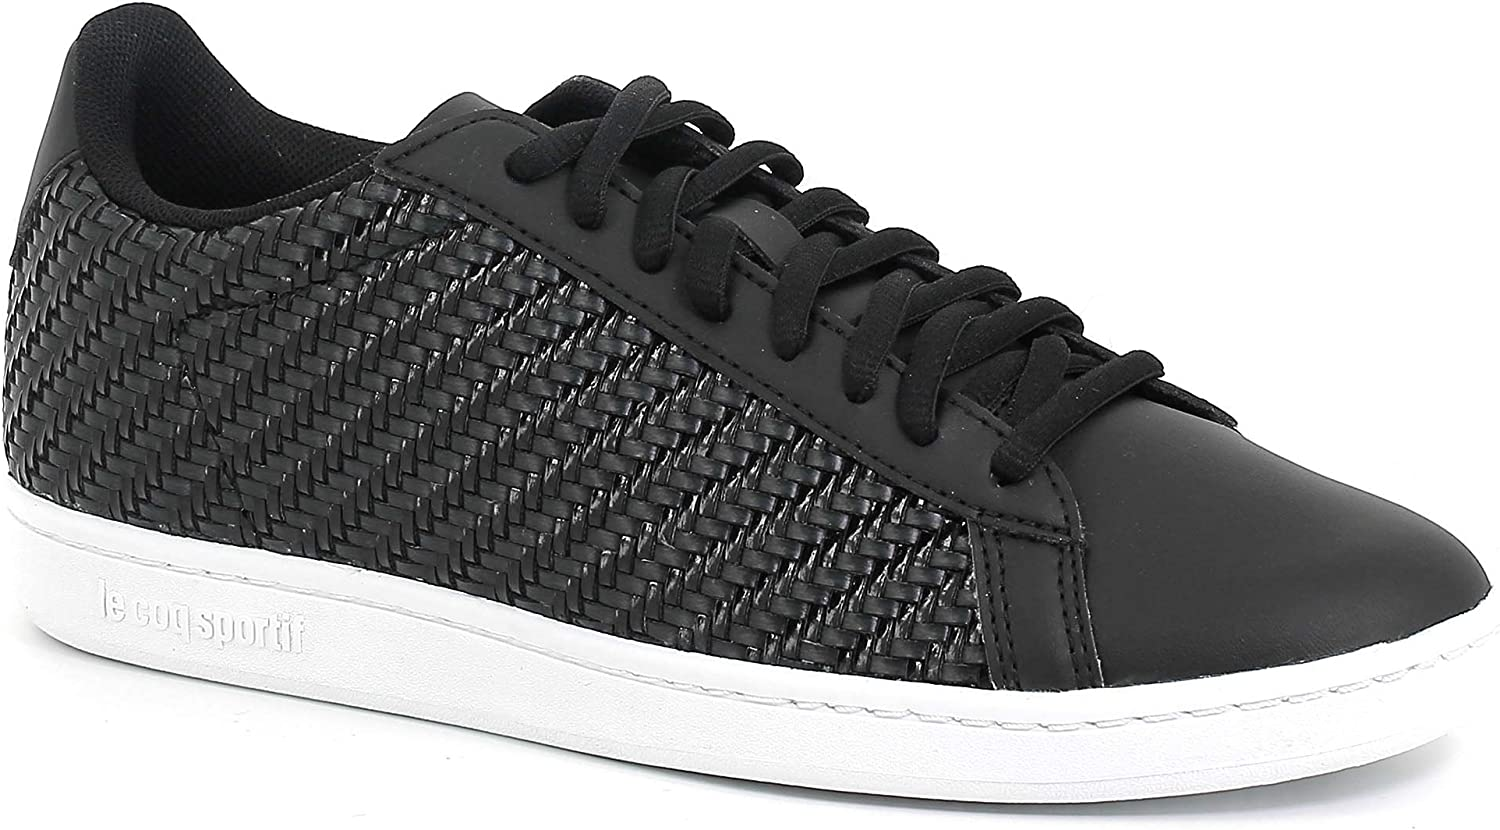 Chaussures le Coq Sportif Taille 37 Courset Woven